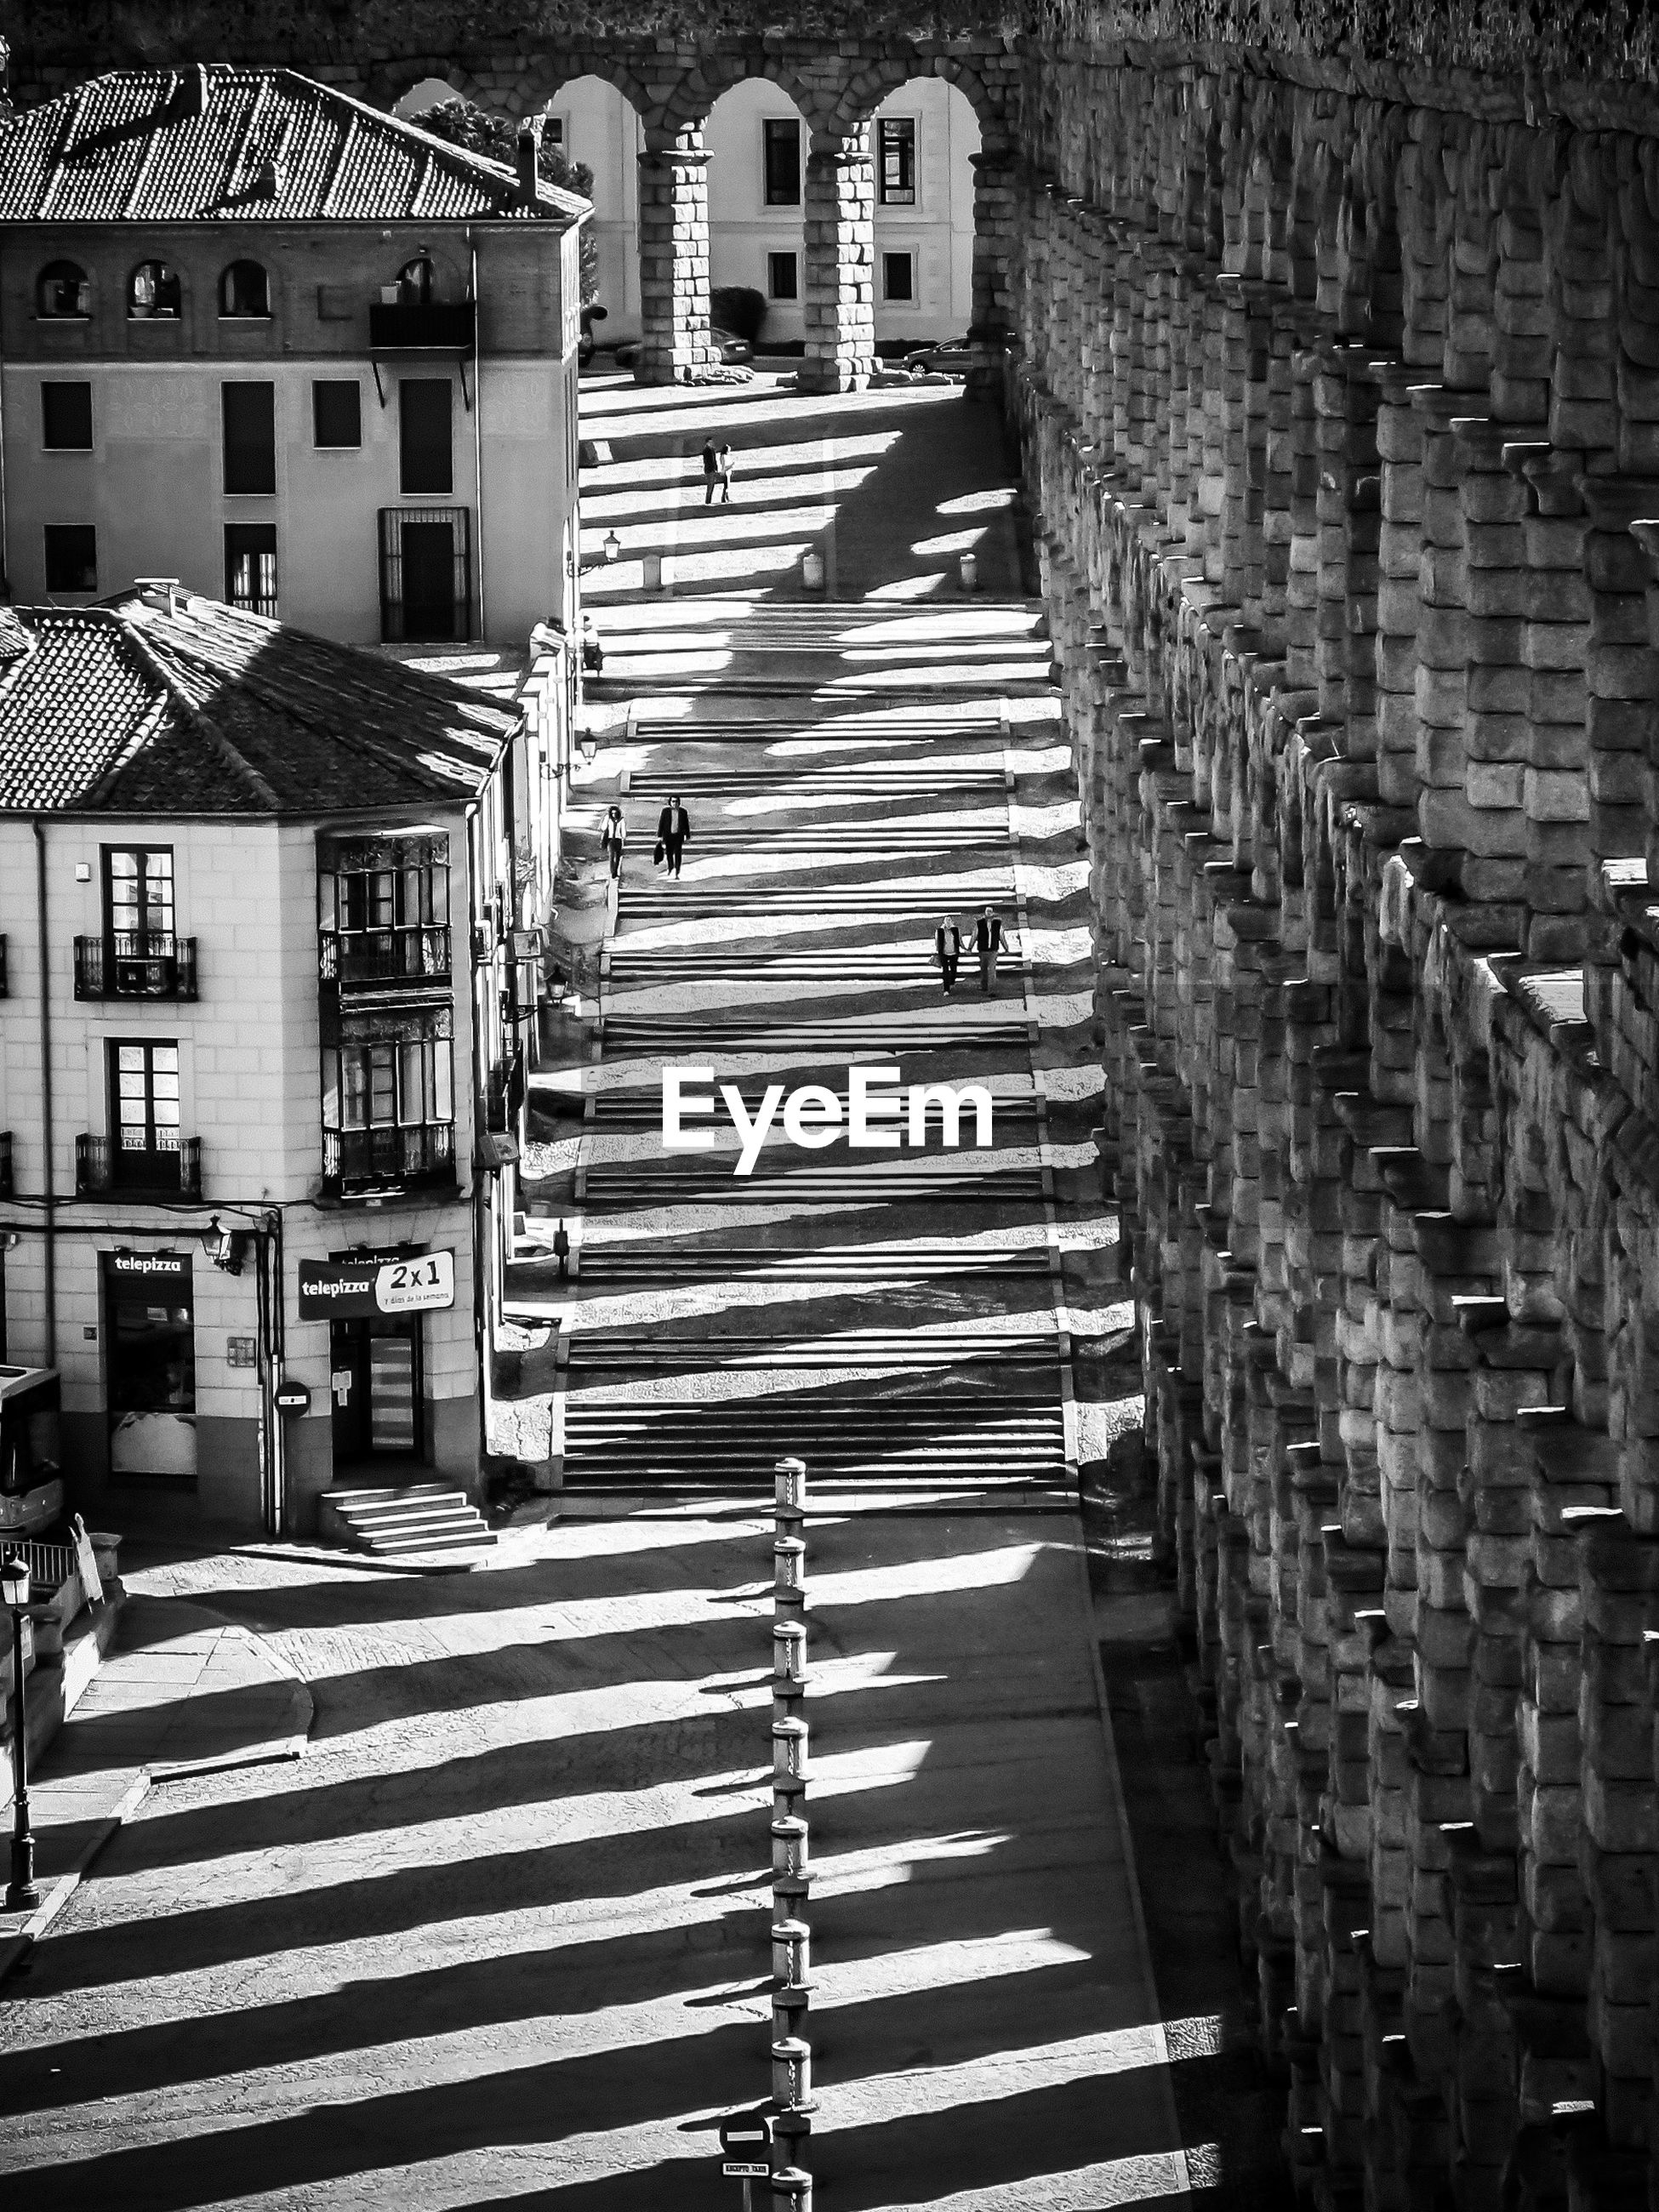 HIGH ANGLE VIEW OF STAIRCASE BY STREET AMIDST BUILDINGS IN CITY